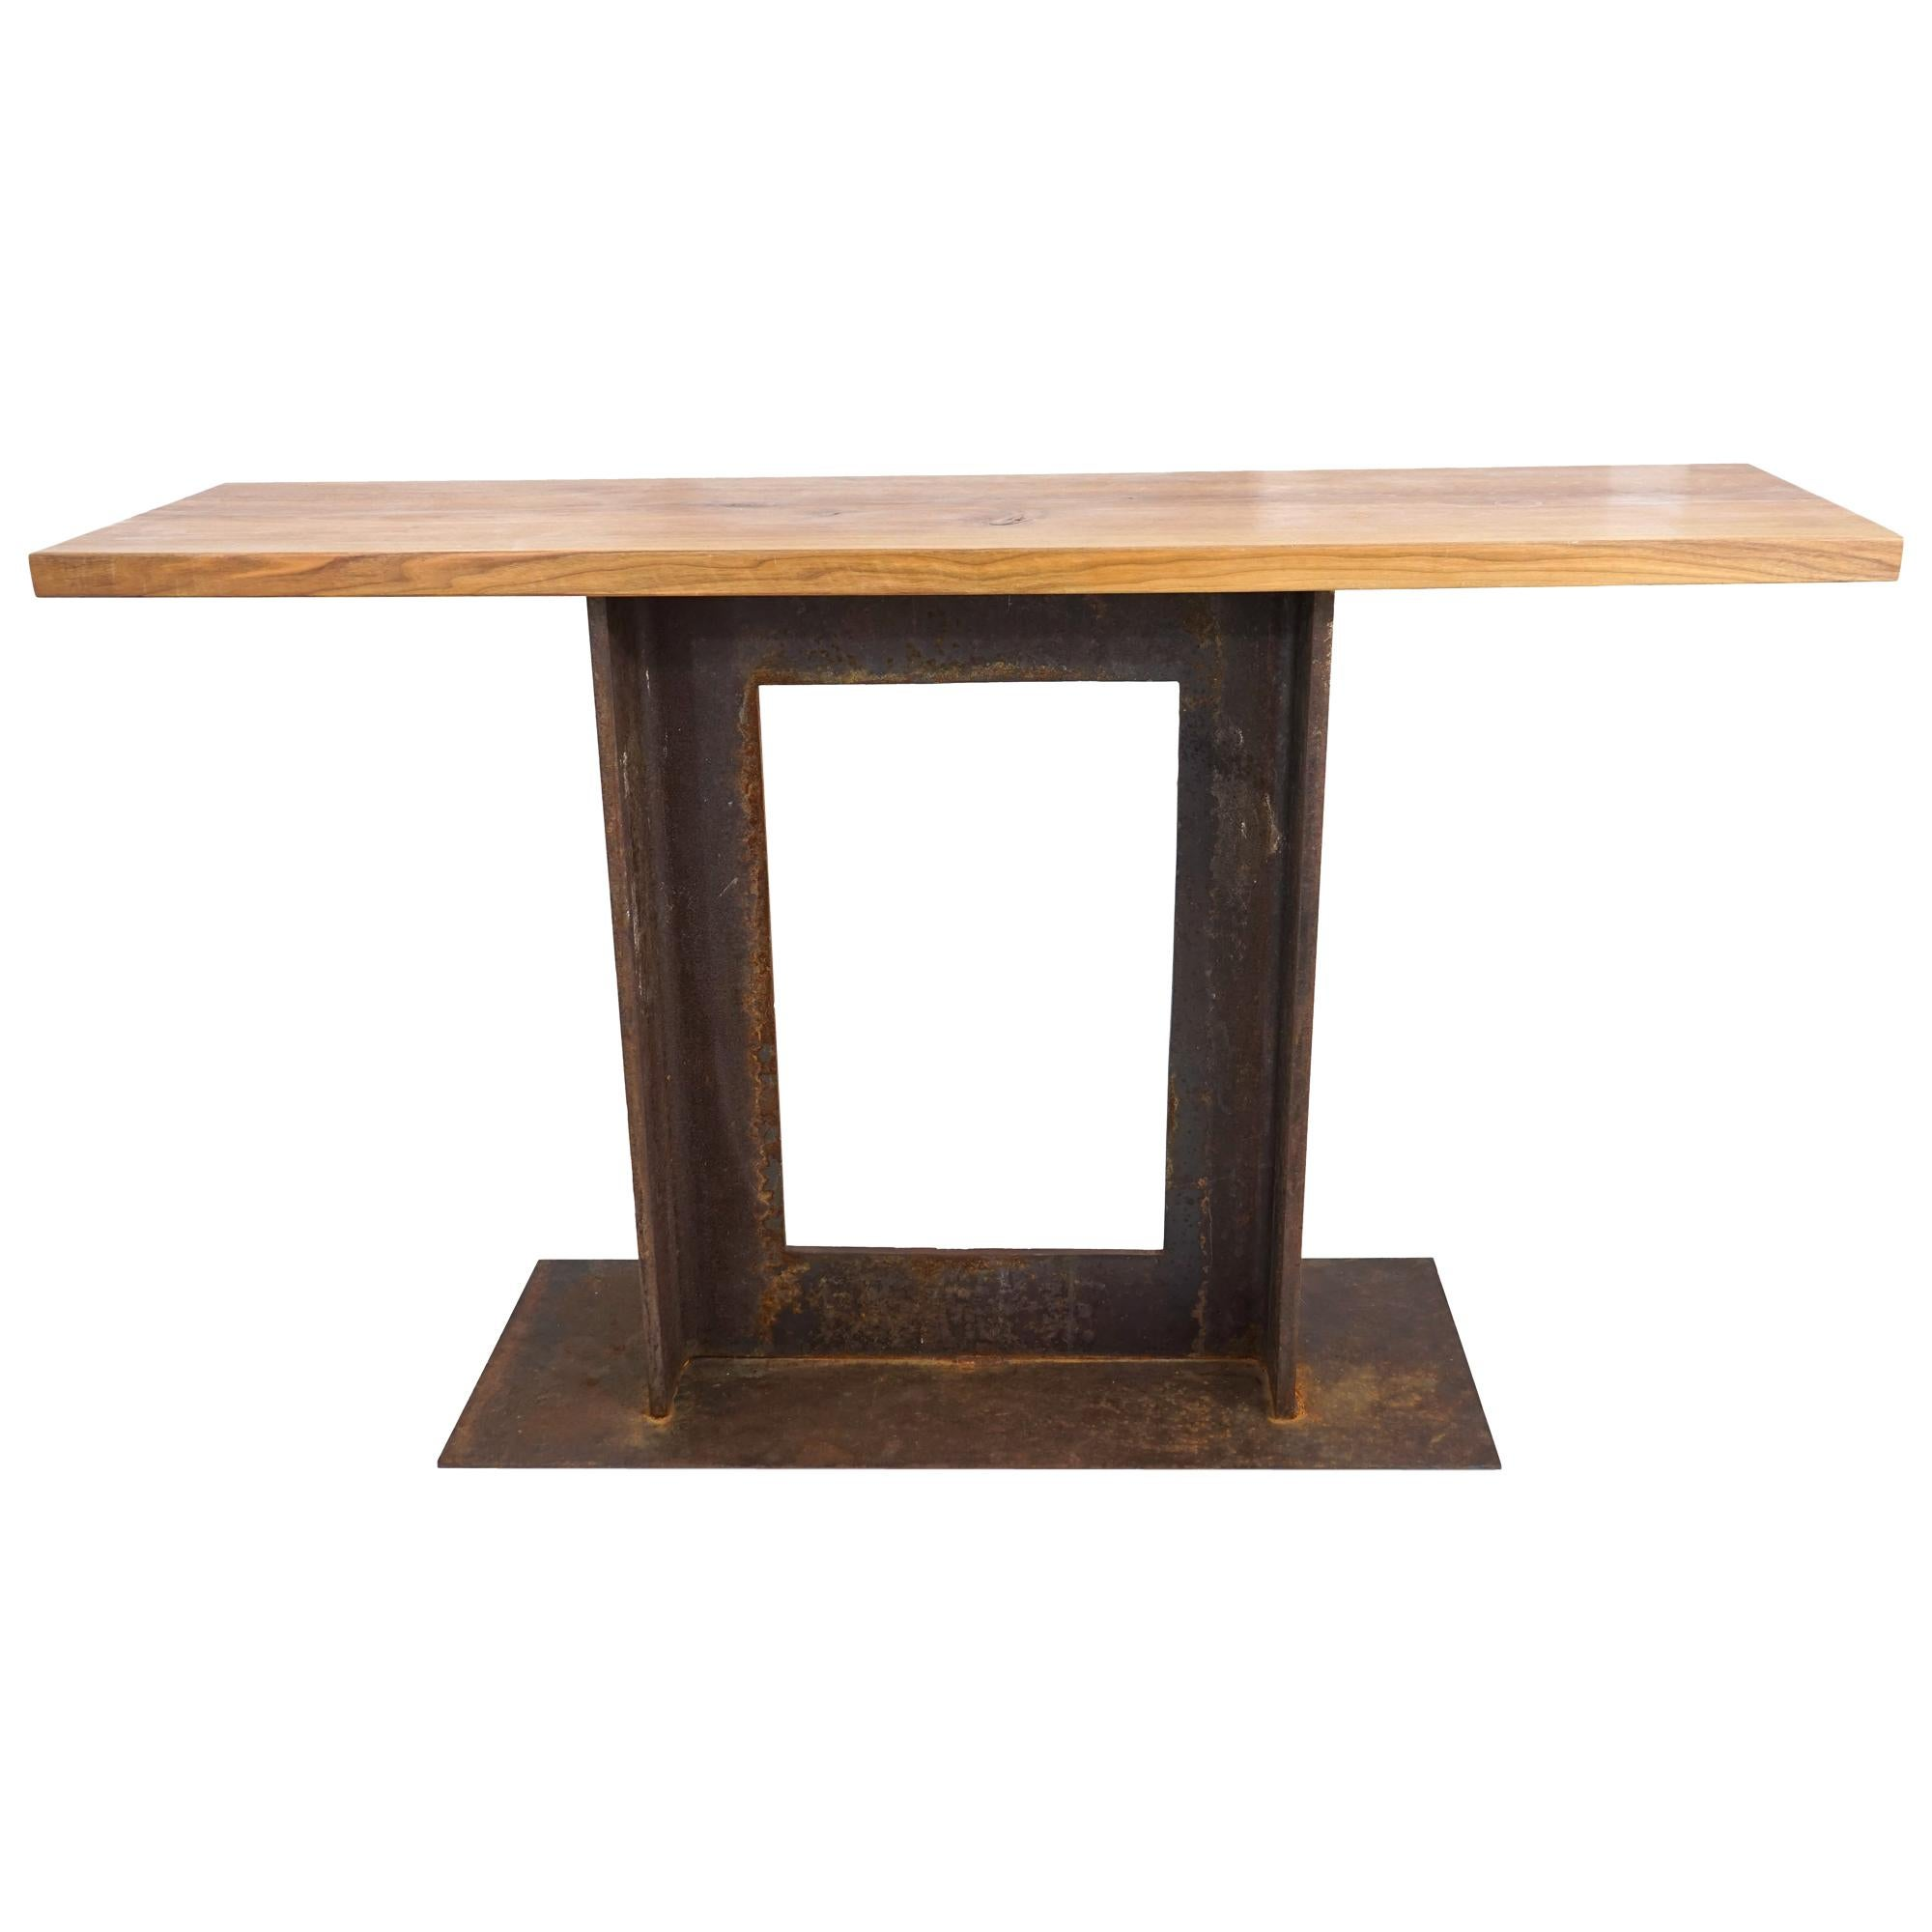 A2 Walnut and Steel Table, by Edelman New York